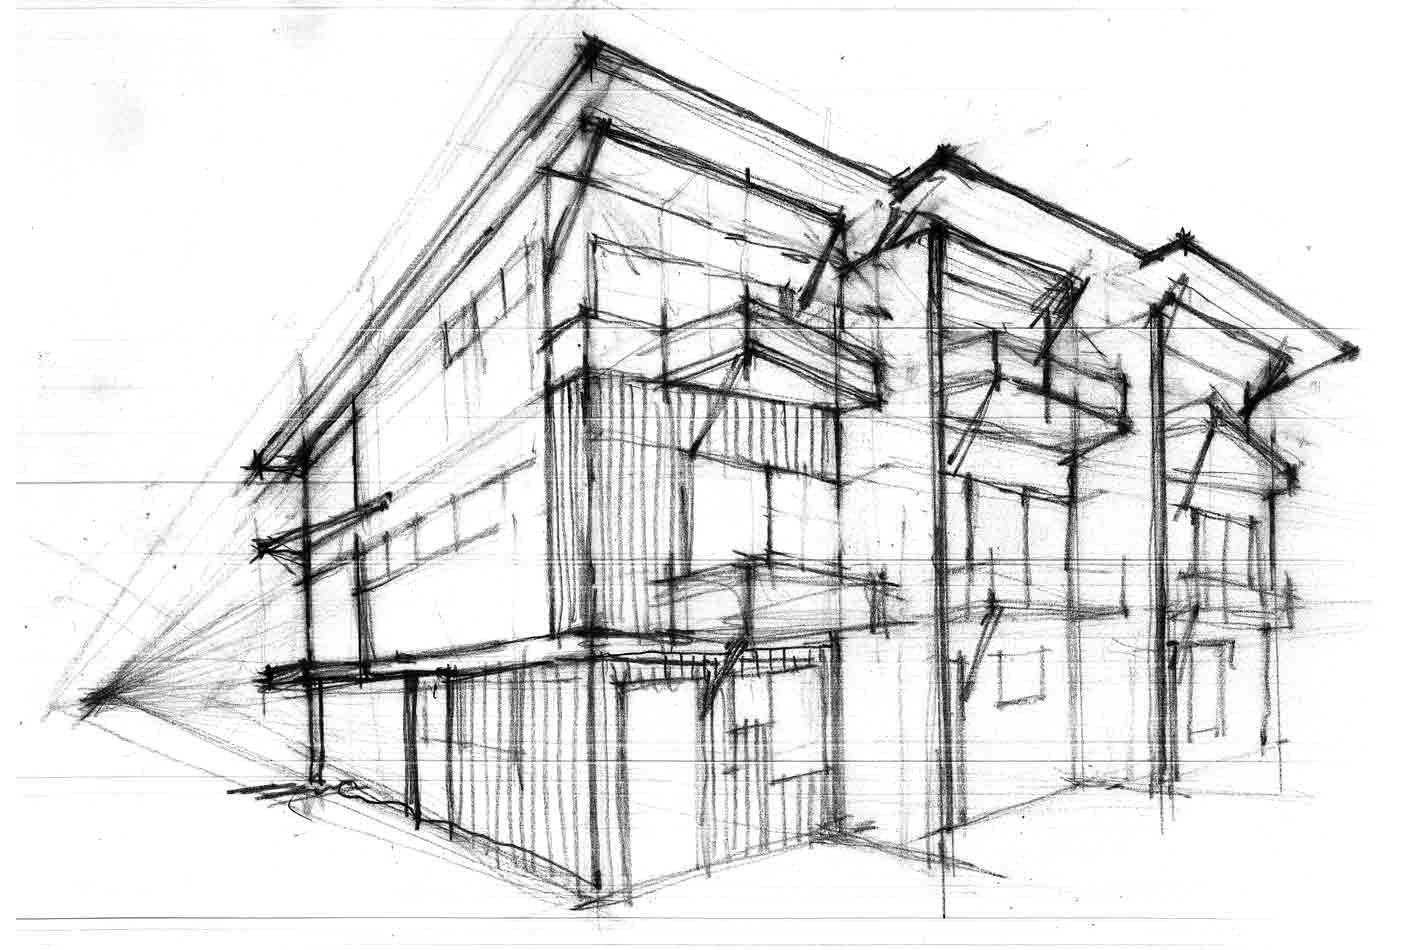 http://culthomes.com/from-paper-to-modern-architecture